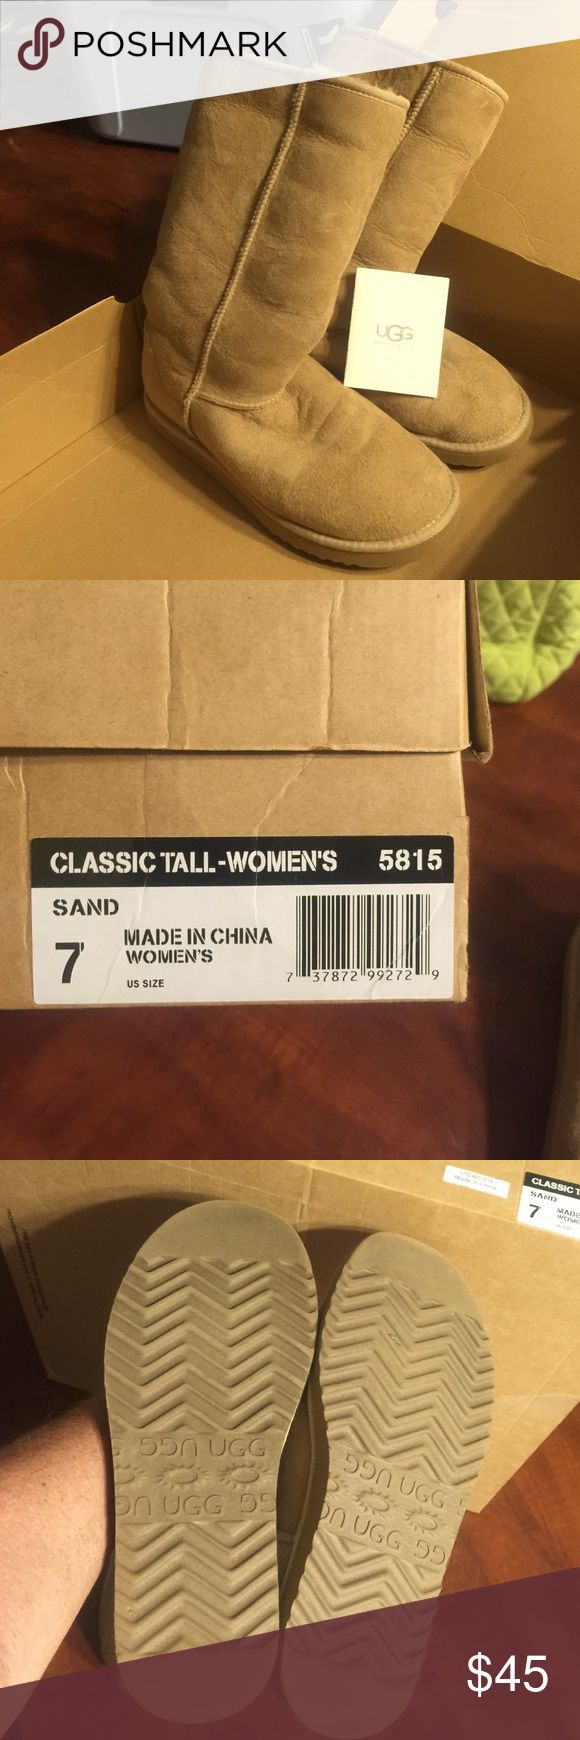 Ugg boots for ladies Classic tall boots for women sand size 7 in like new condition UGG Shoes Ankle Boots & Booties